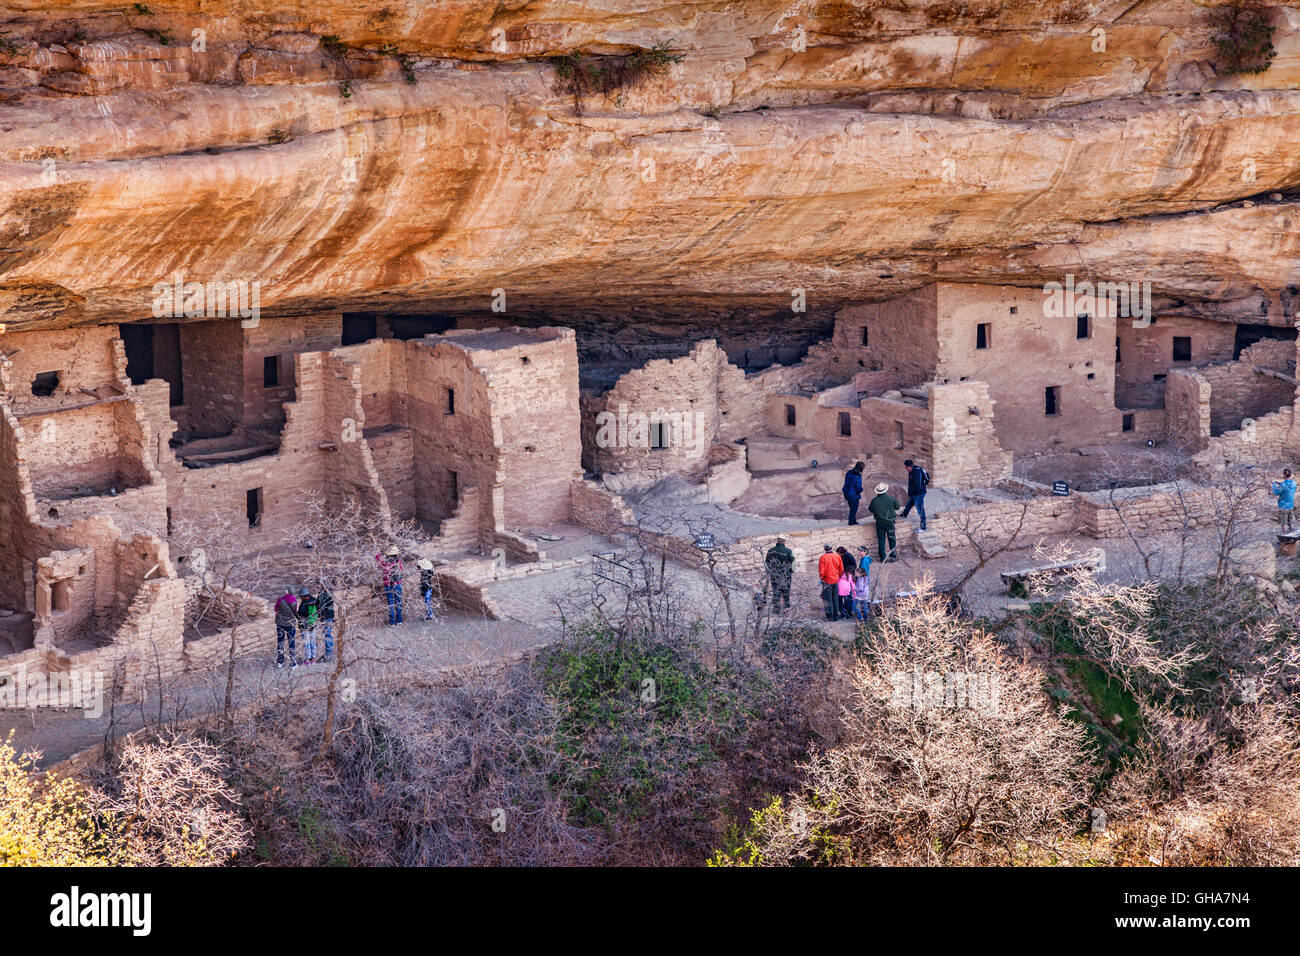 Visiteurs à la maison de l'habitation d'une falaise dans le Parc National de Mesa Verde, Colorado, Photo Stock